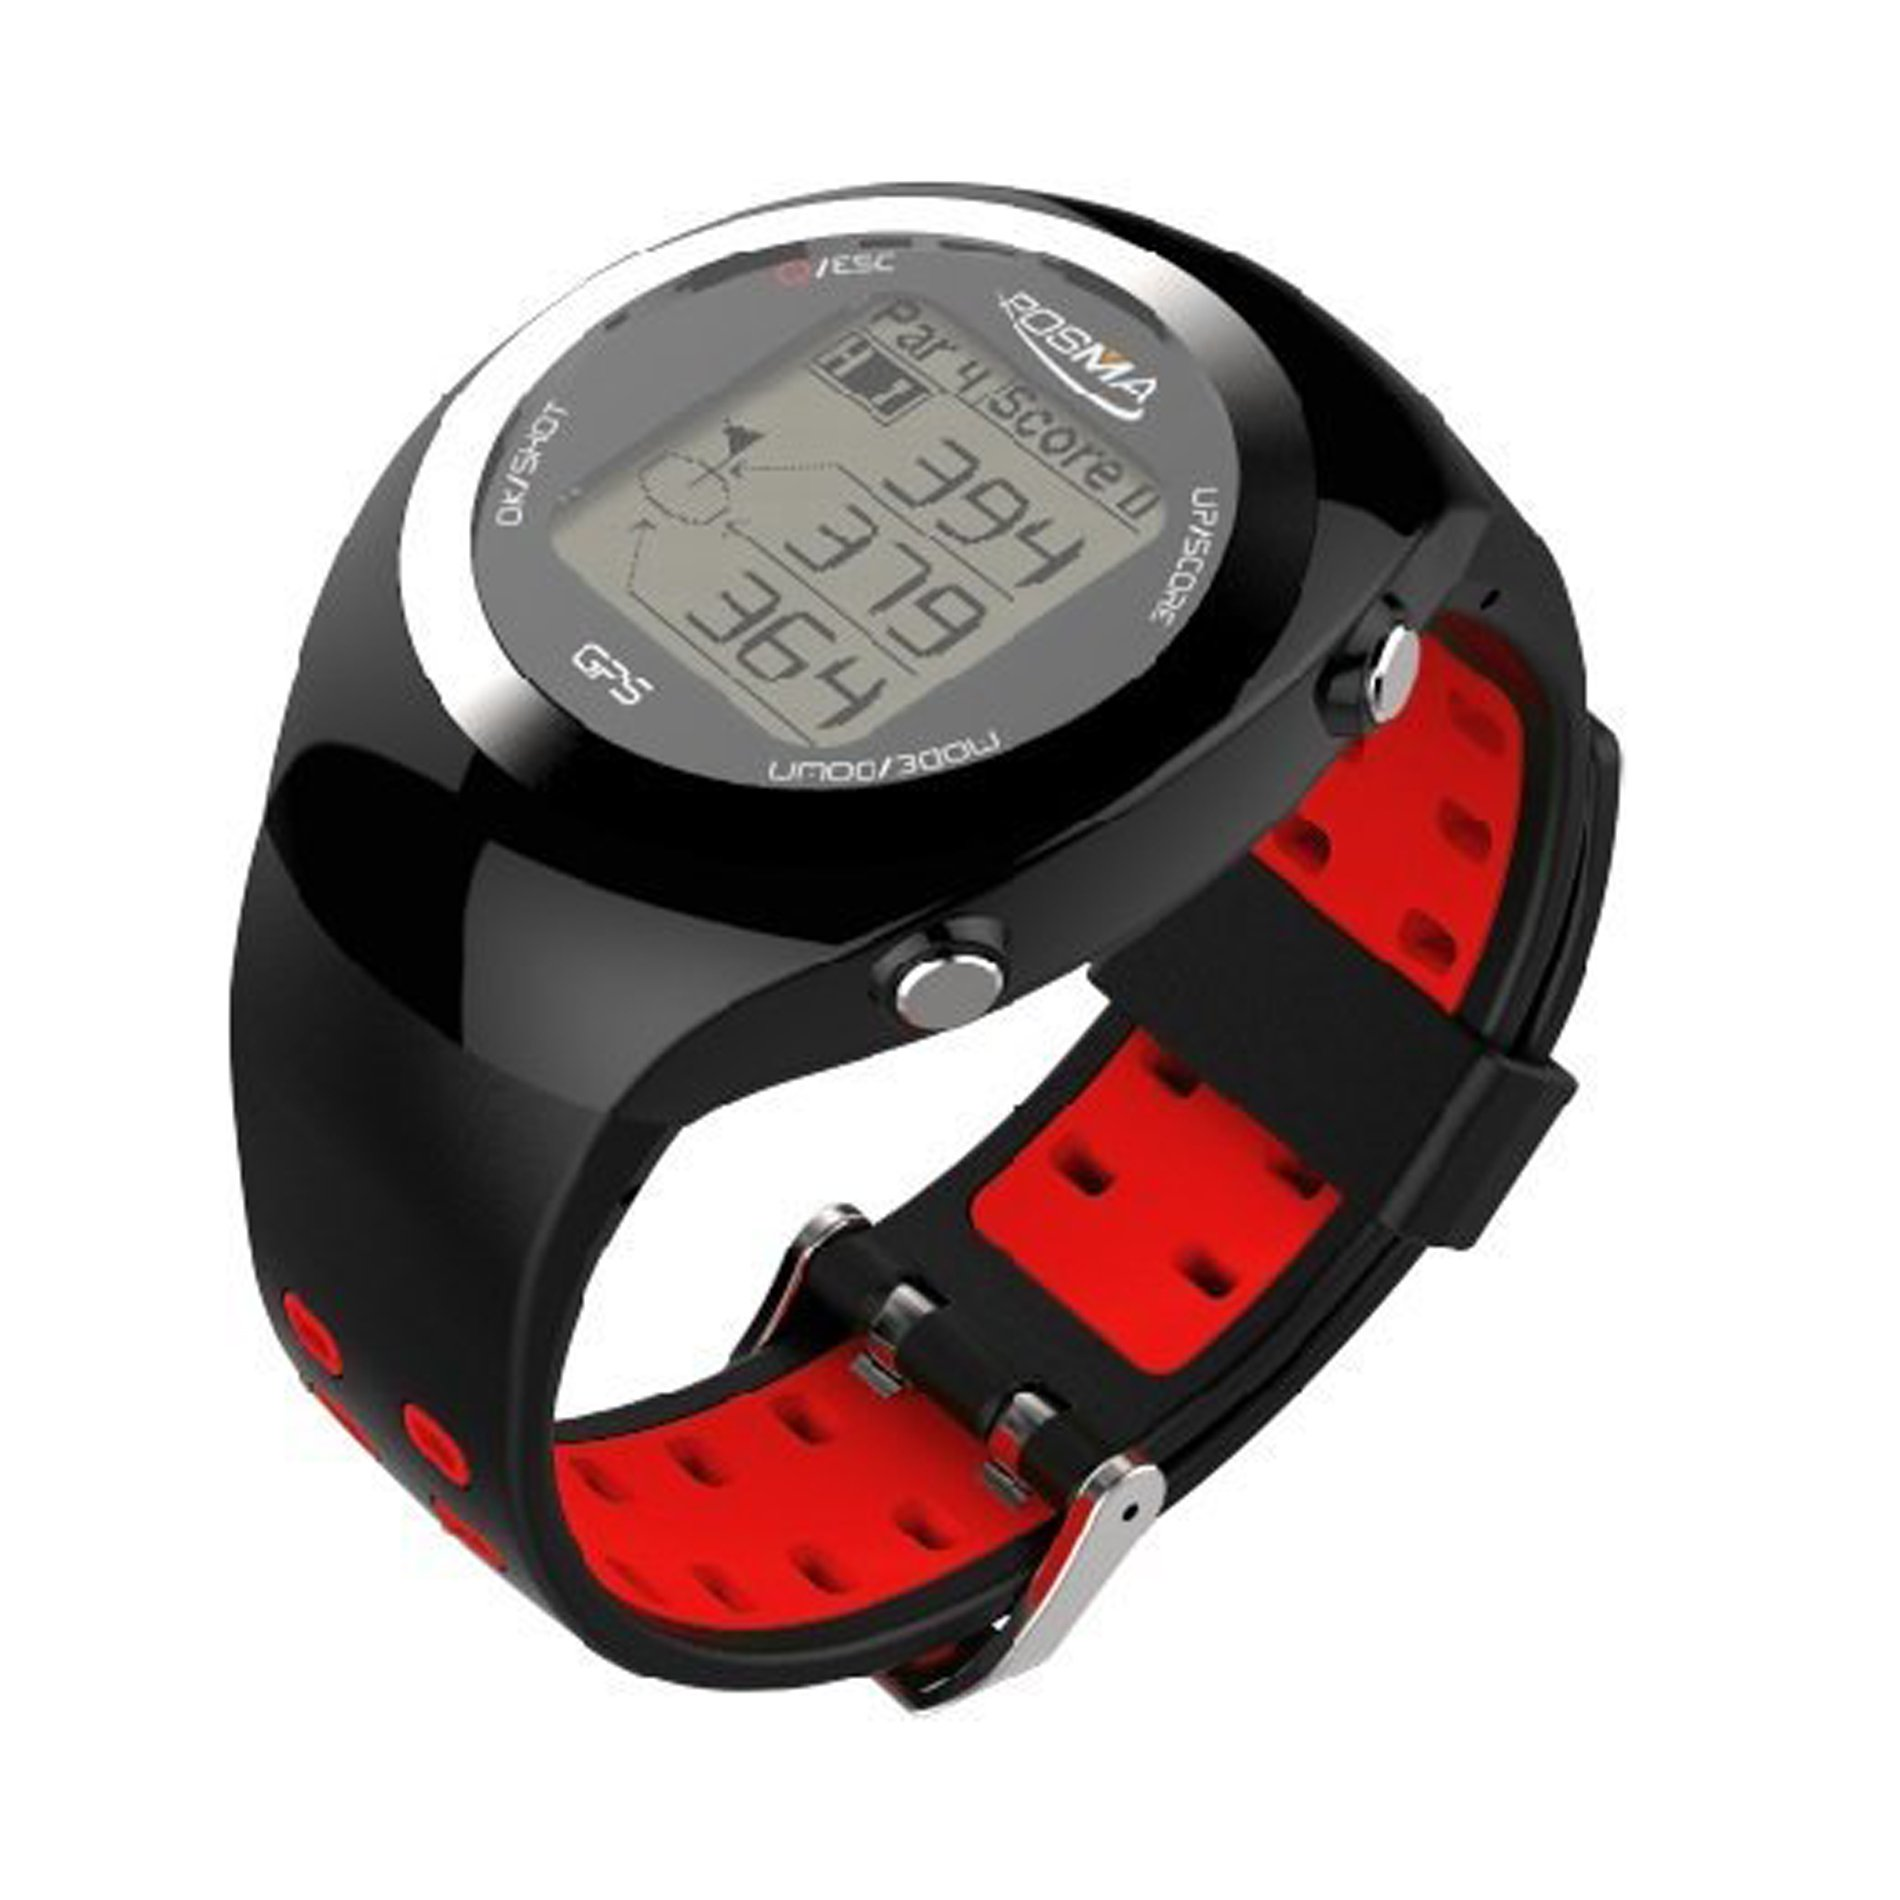 POSMA GT2 Golf Watch with GPS, Golf Rangefinder Activity Tracker Watches, Preloaded Golf Courses, No Download - RED by POSMA